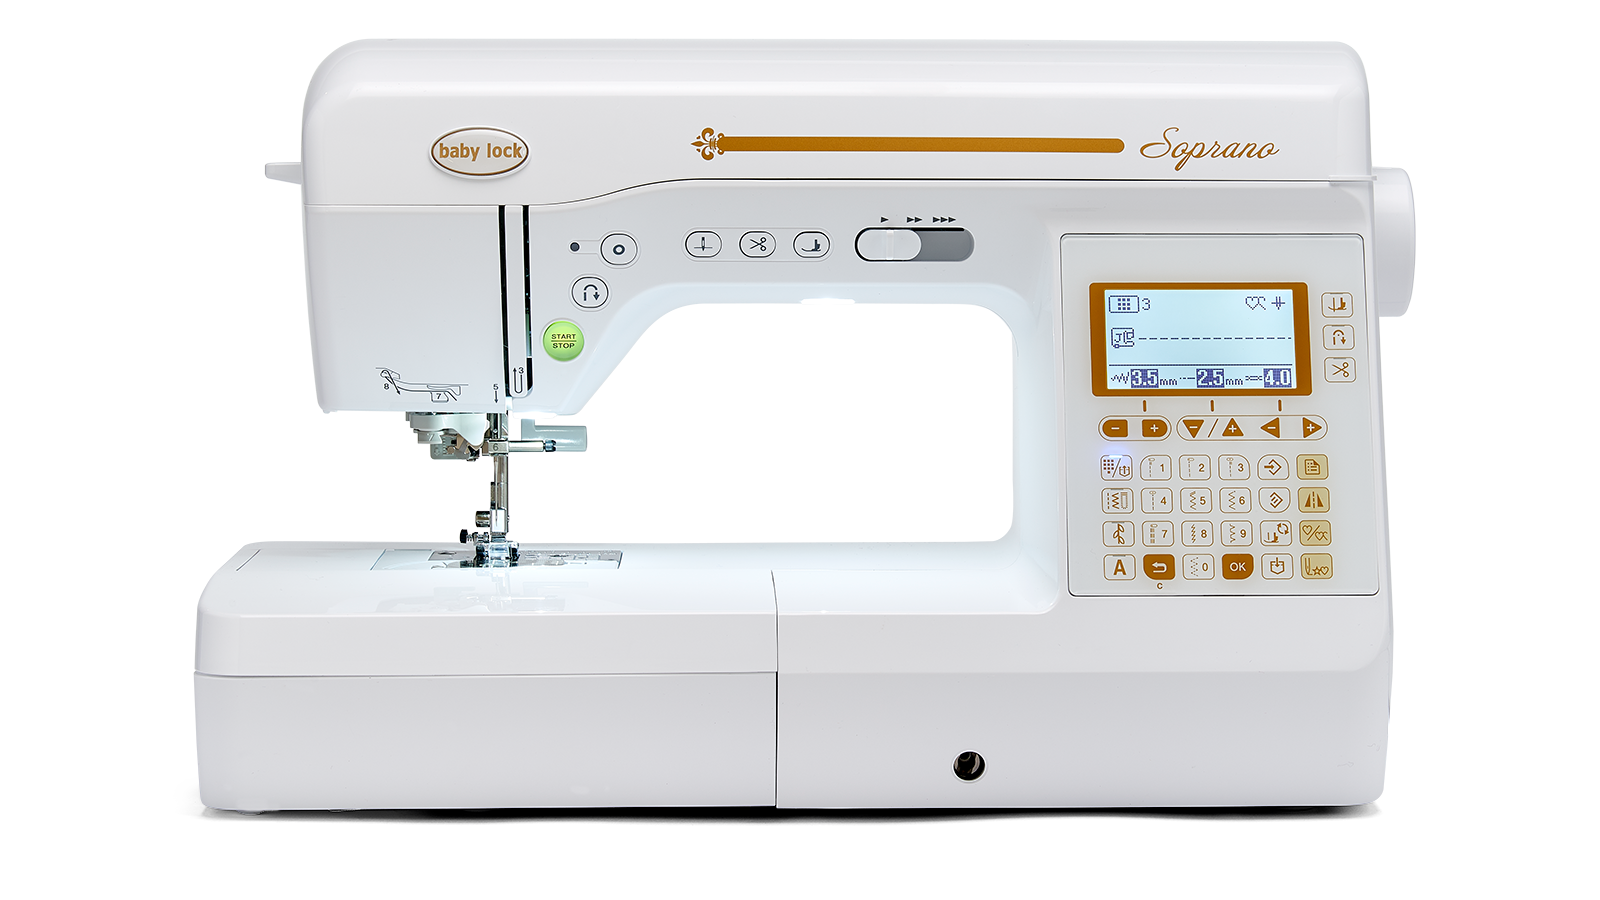 BabyLock Soprano - Sewing & Quilting Machine - In Stock Now!